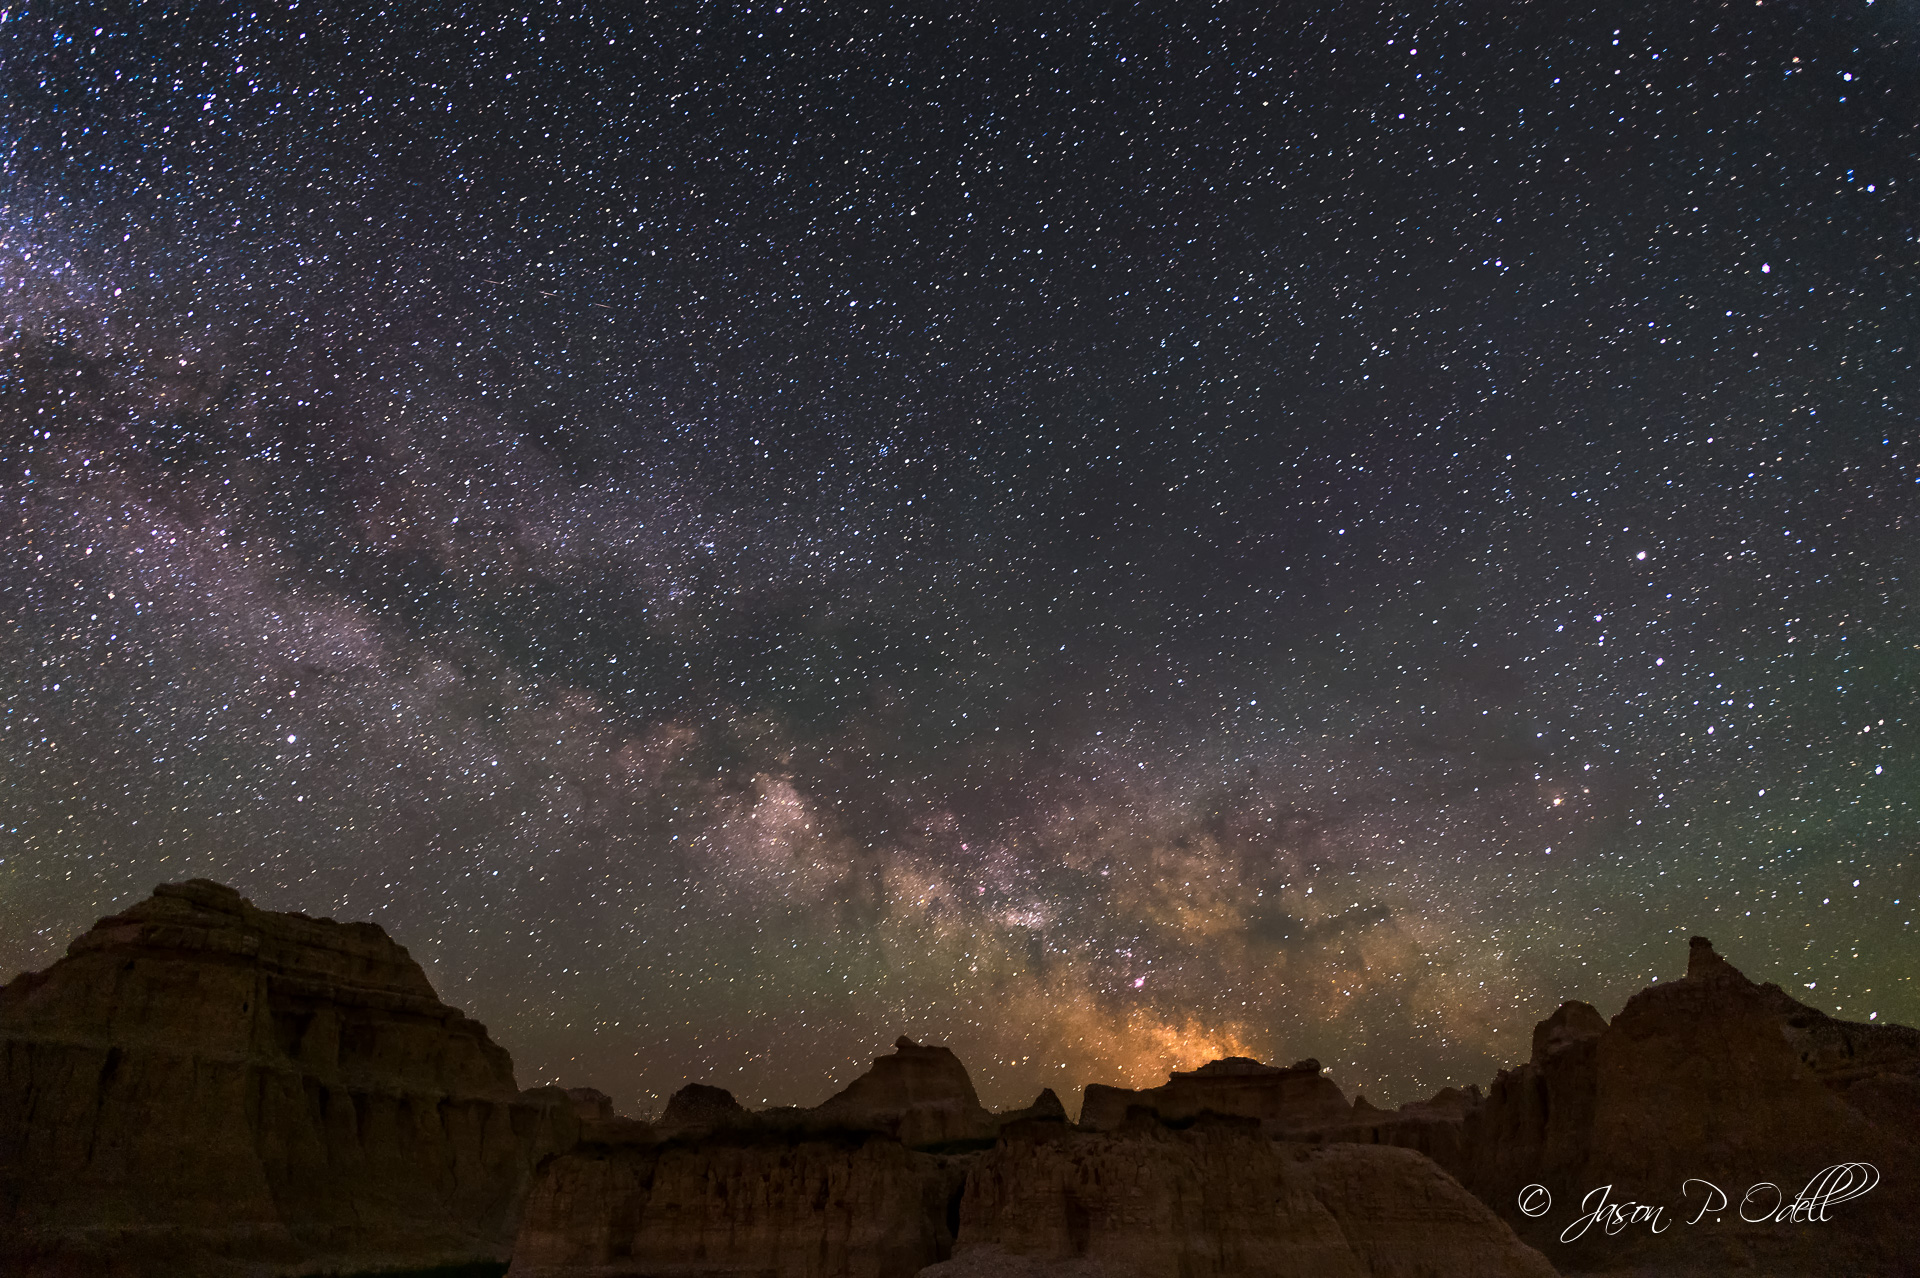 Milky Way over the Badlands of South Dakota